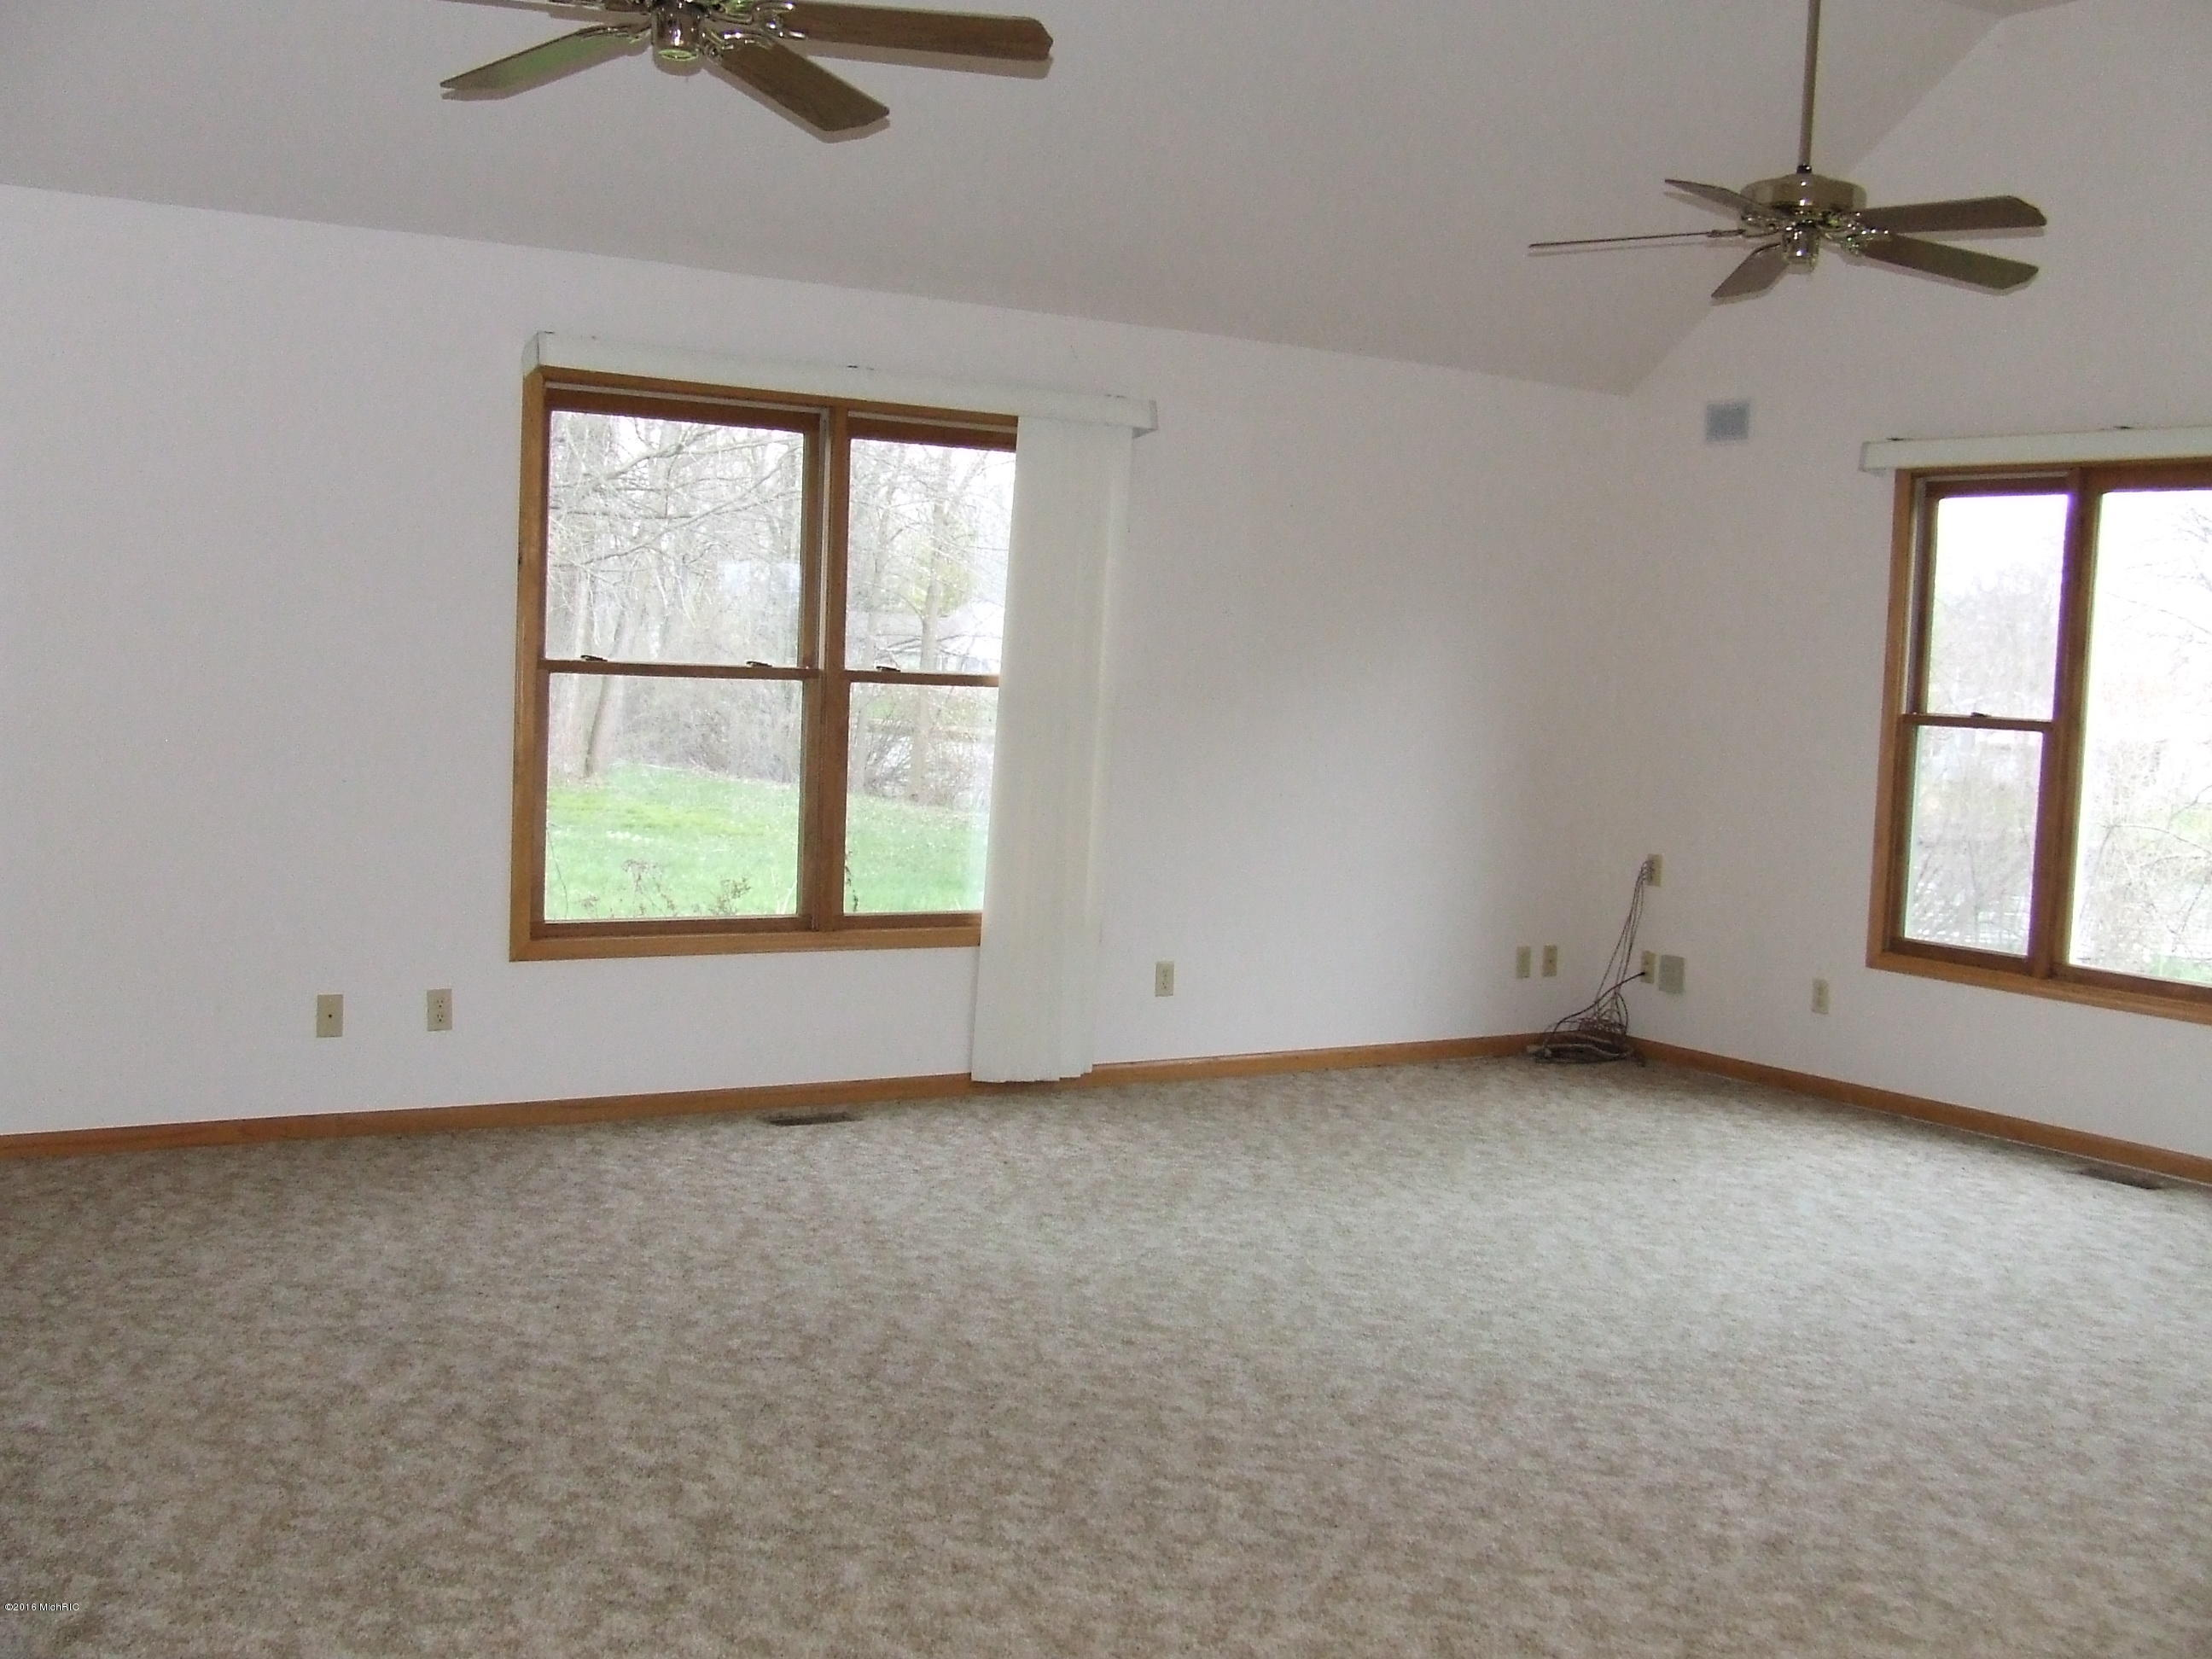 43460 Van Auken , Bangor, MI 49013 Photo 2